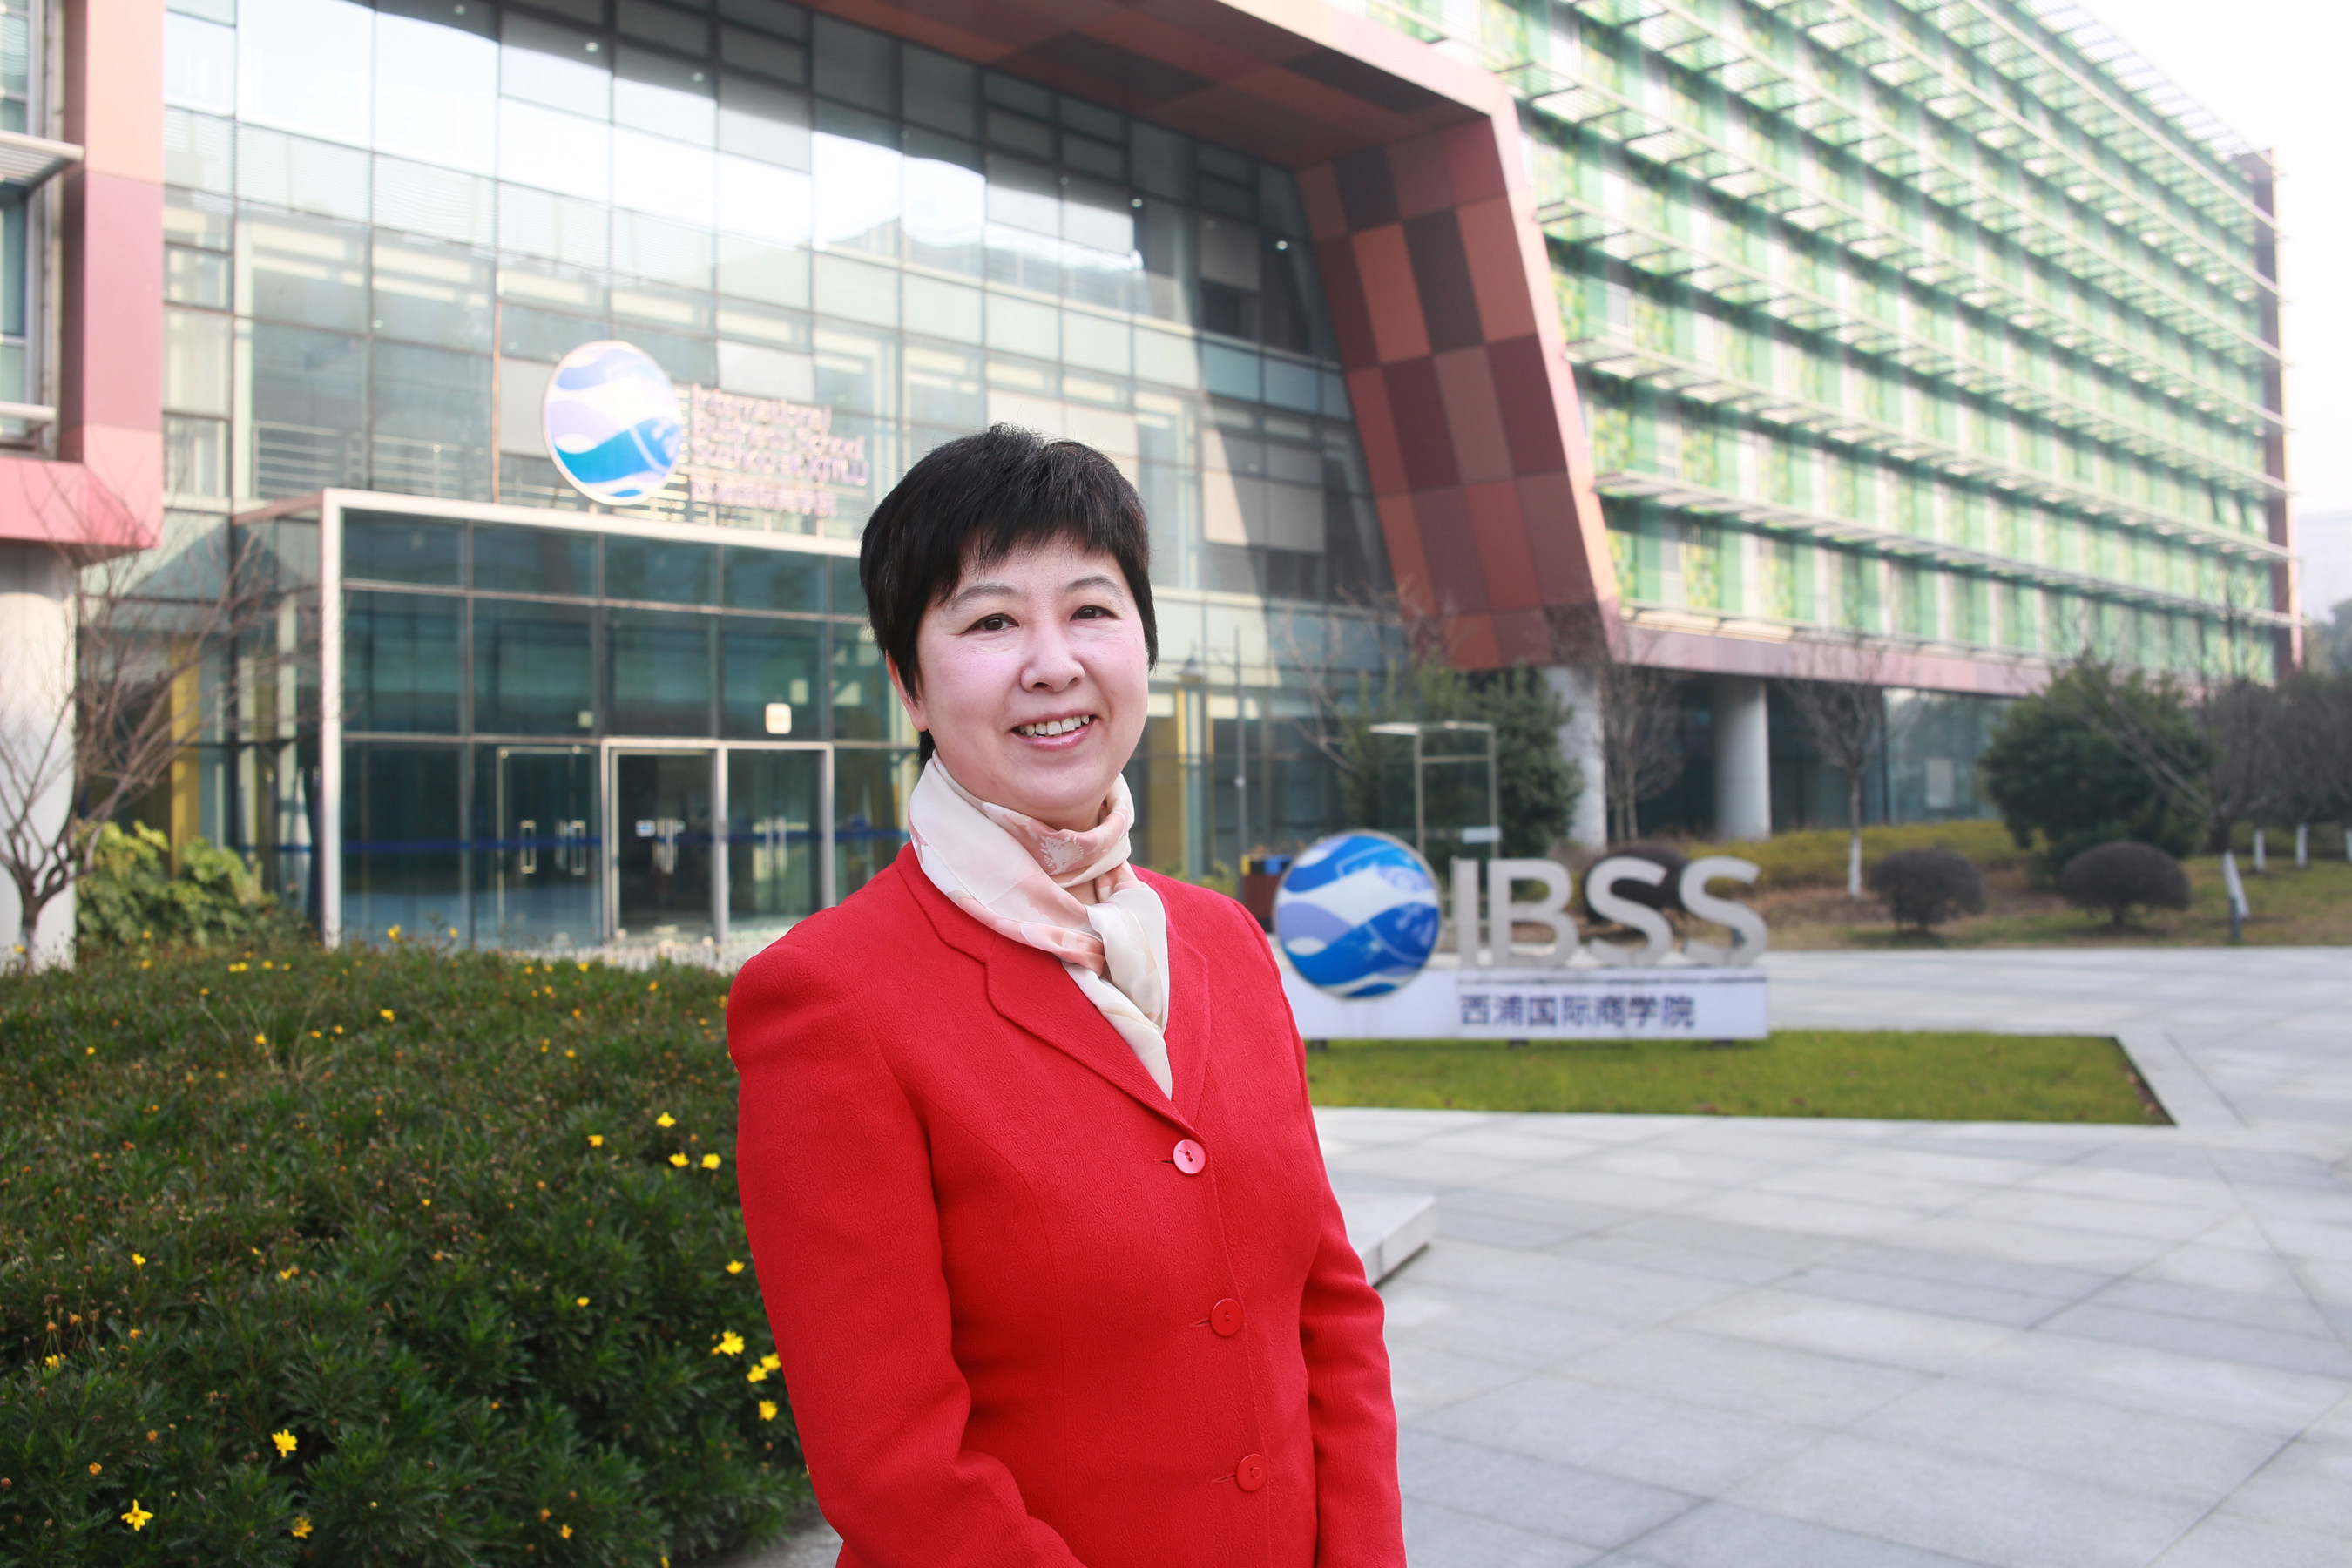 Professor Jean Chen joins International Business School Suzhou at Xi'an Jiaotong-Liverpool University as the ...